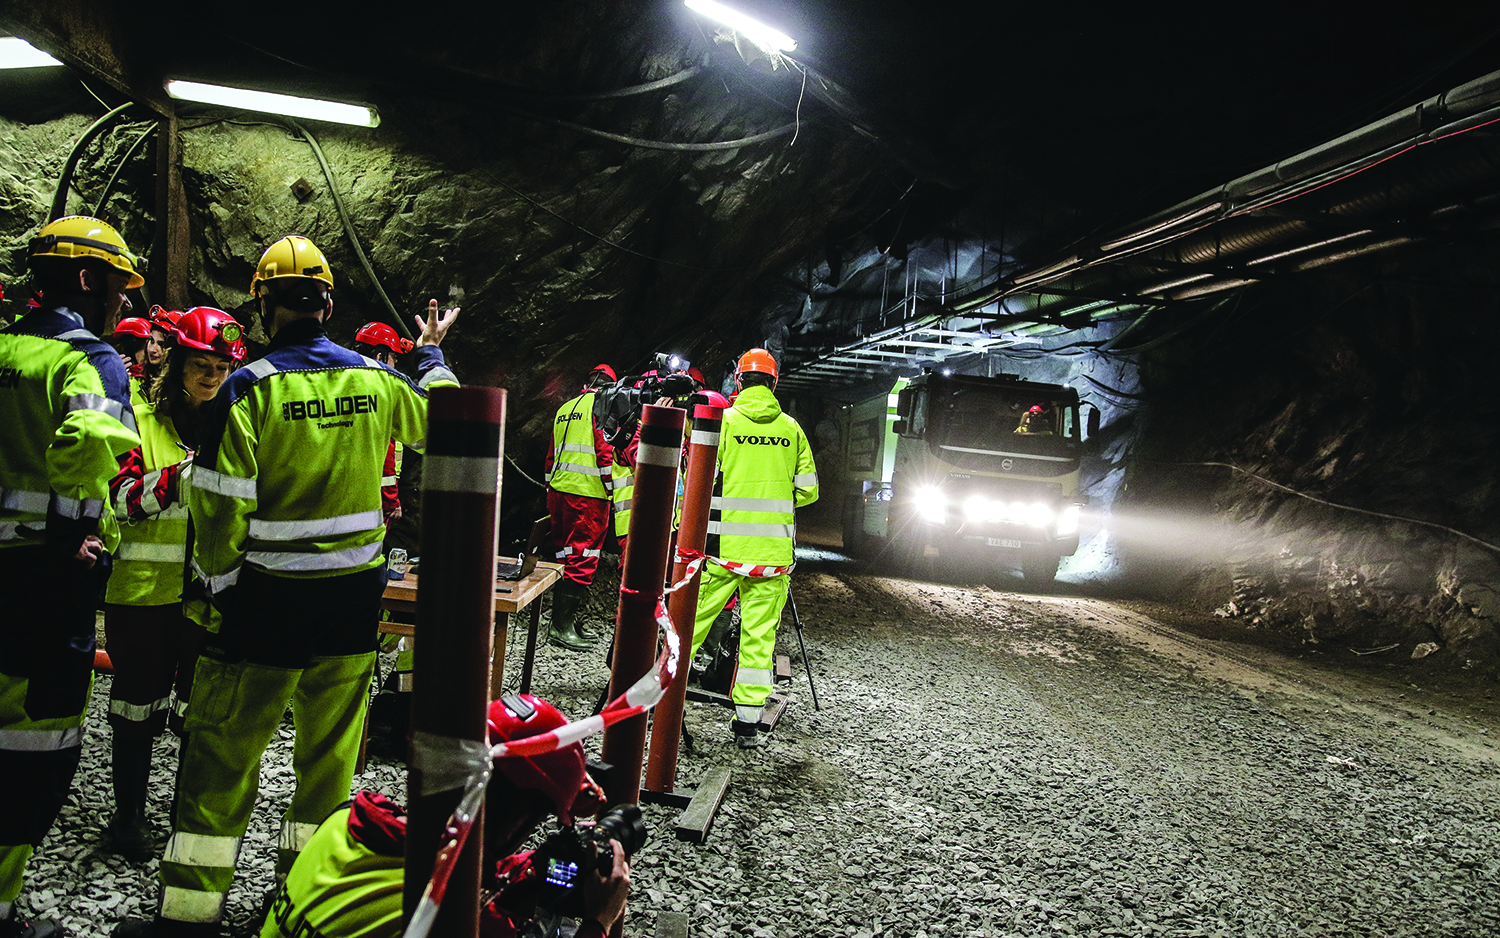 Human drivers may become a thing of the past if field testing of driverless Volvo trucks at Boliden's Kristineberg underground mine proves successful.